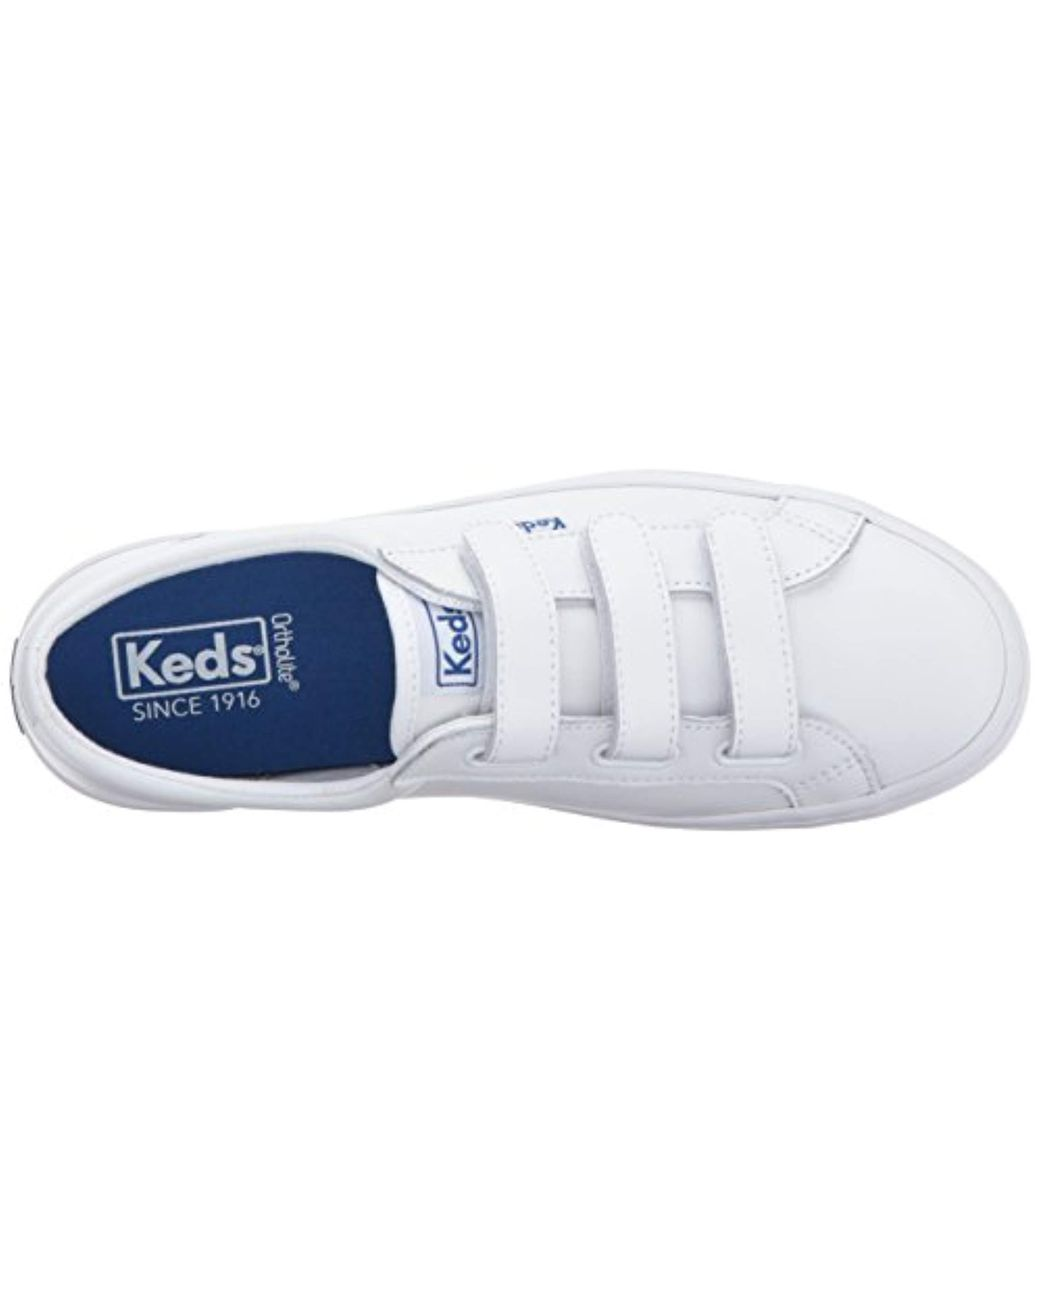 3e095da18ec8c Lyst - Keds Tiebreak Leather Fashion Sneaker in White - Save 56%